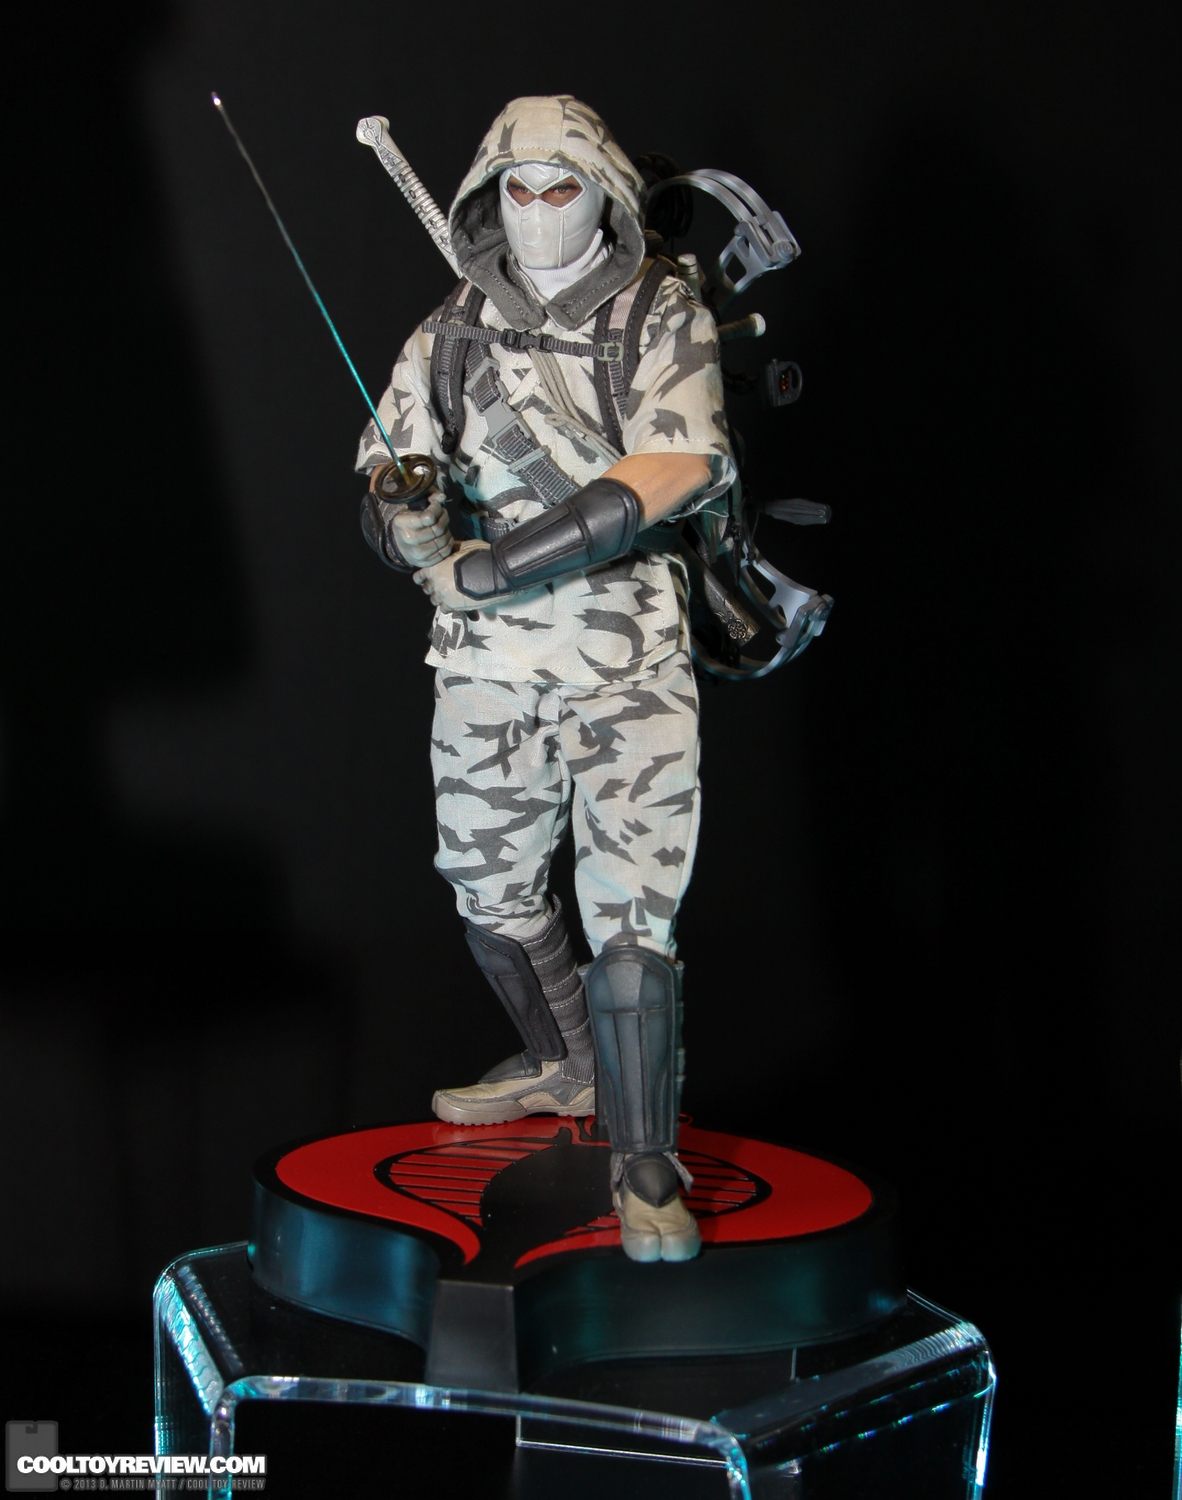 [Sideshow] G.I. Joe: Storm Shadow Sixth Scale Figure SDCC_2013_Sideshow_Collectibles_Wed-009